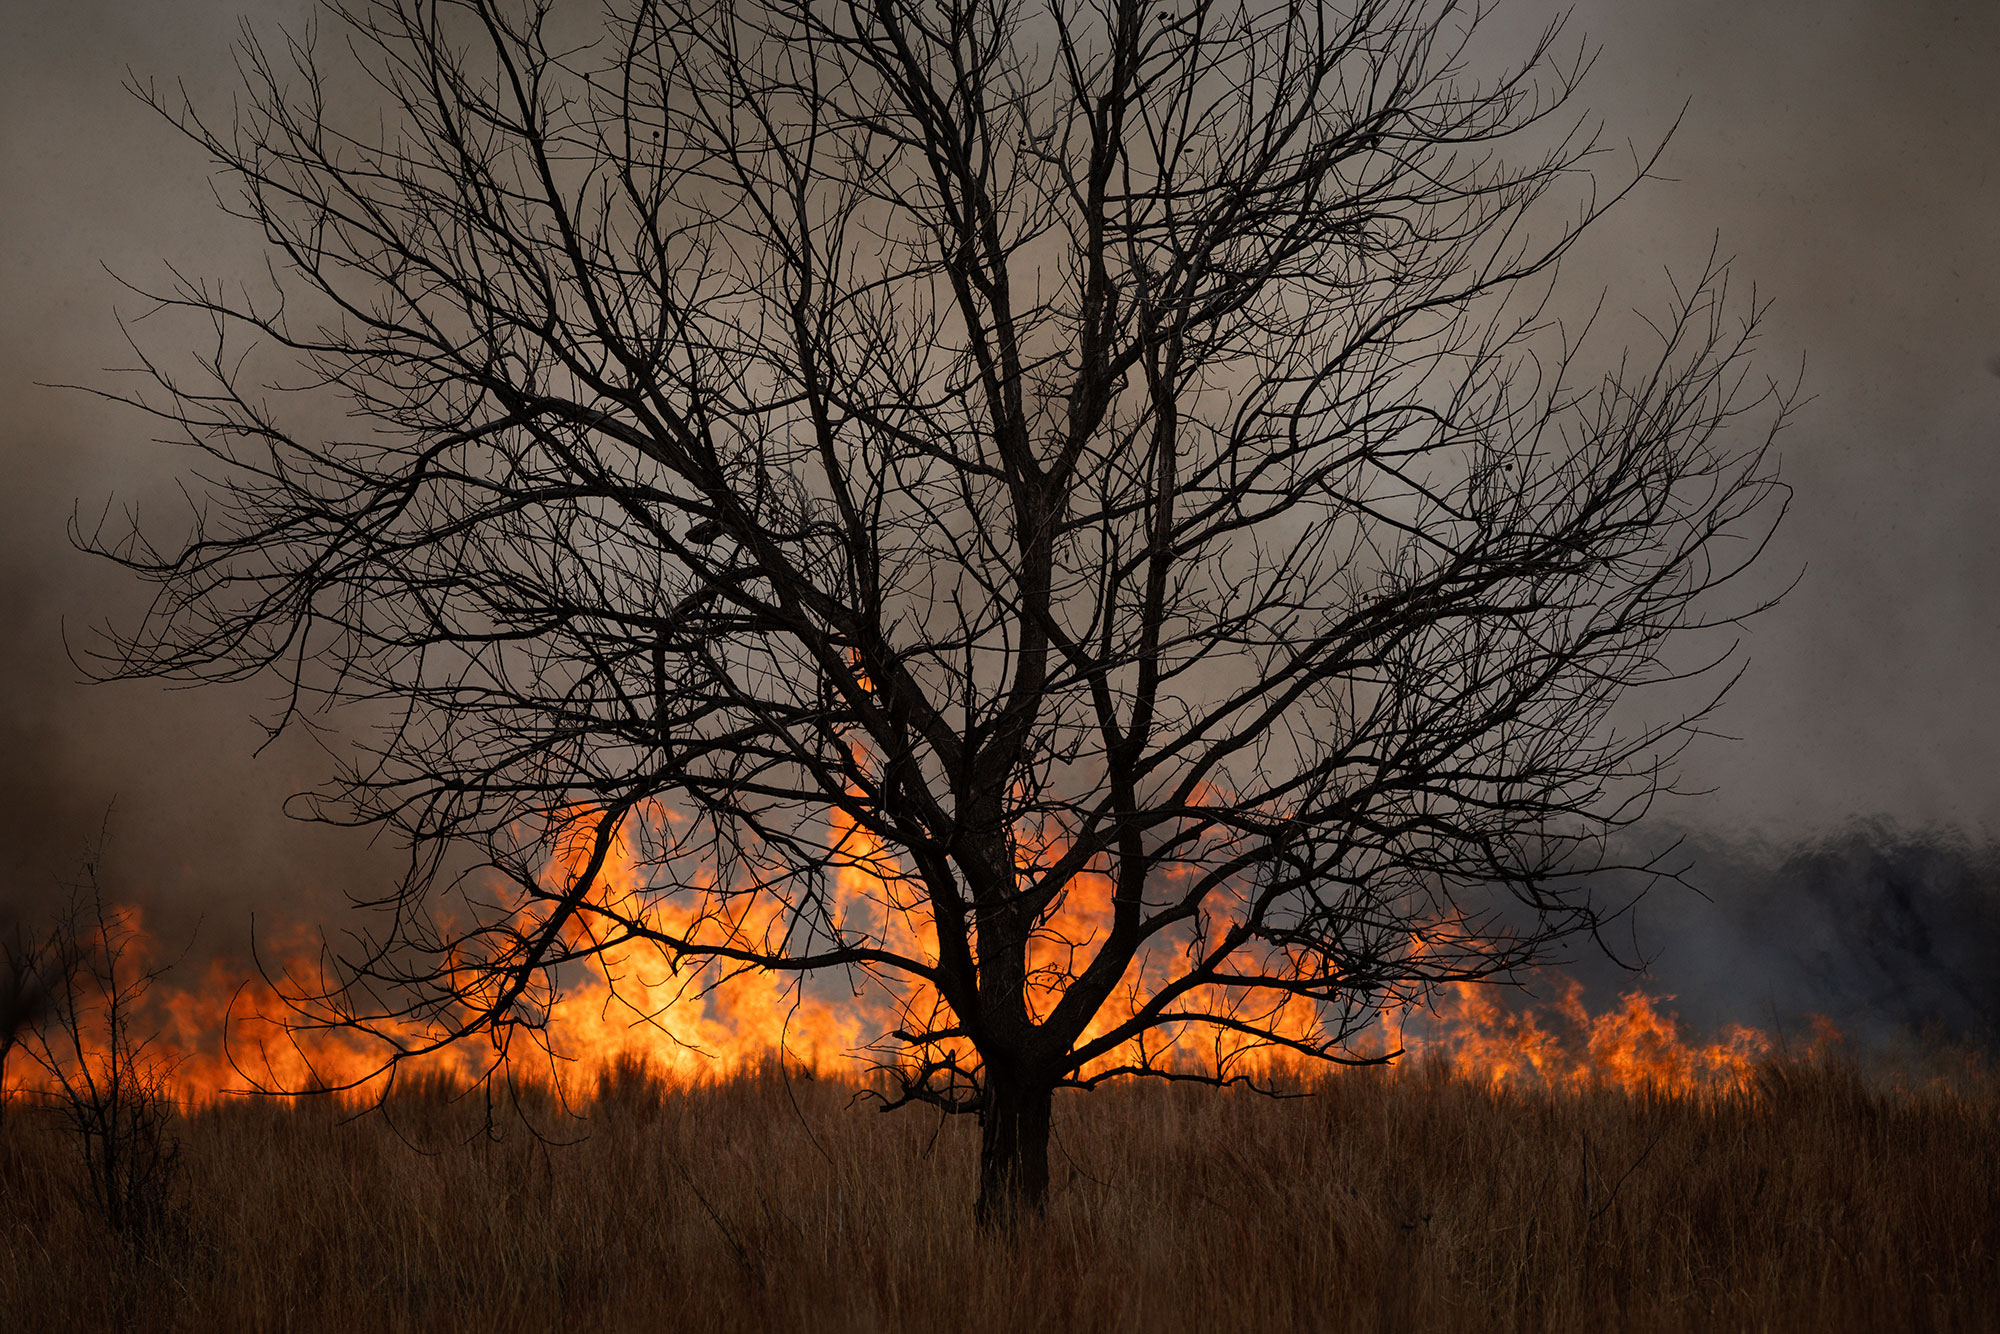 Prescribed fire burning in a pasture